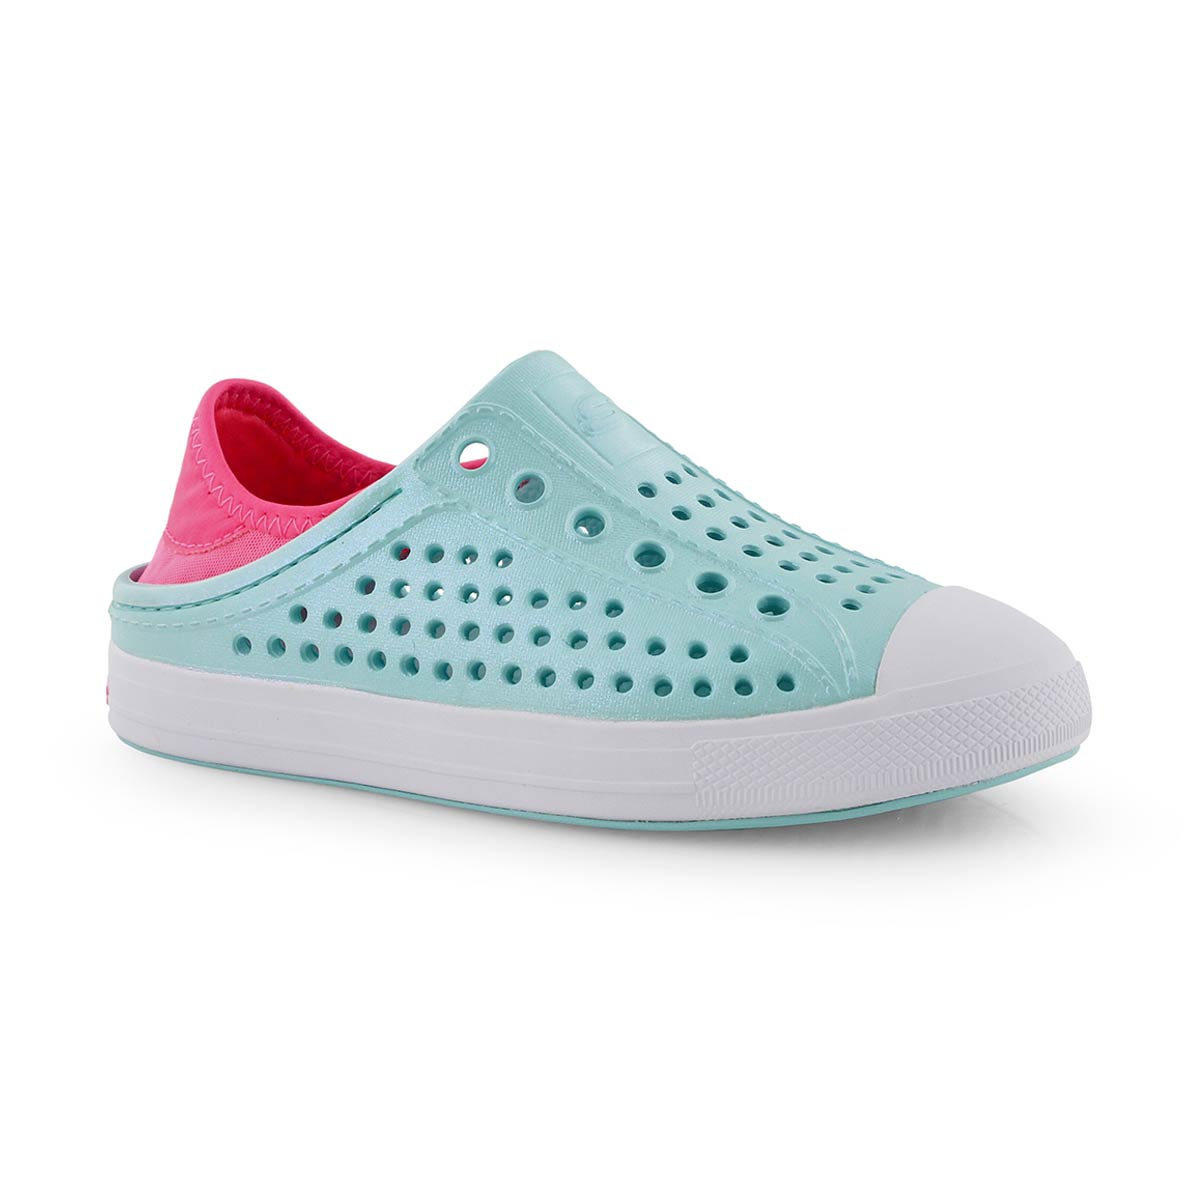 Grls Guzman Steps turq/pnk slip on shoe